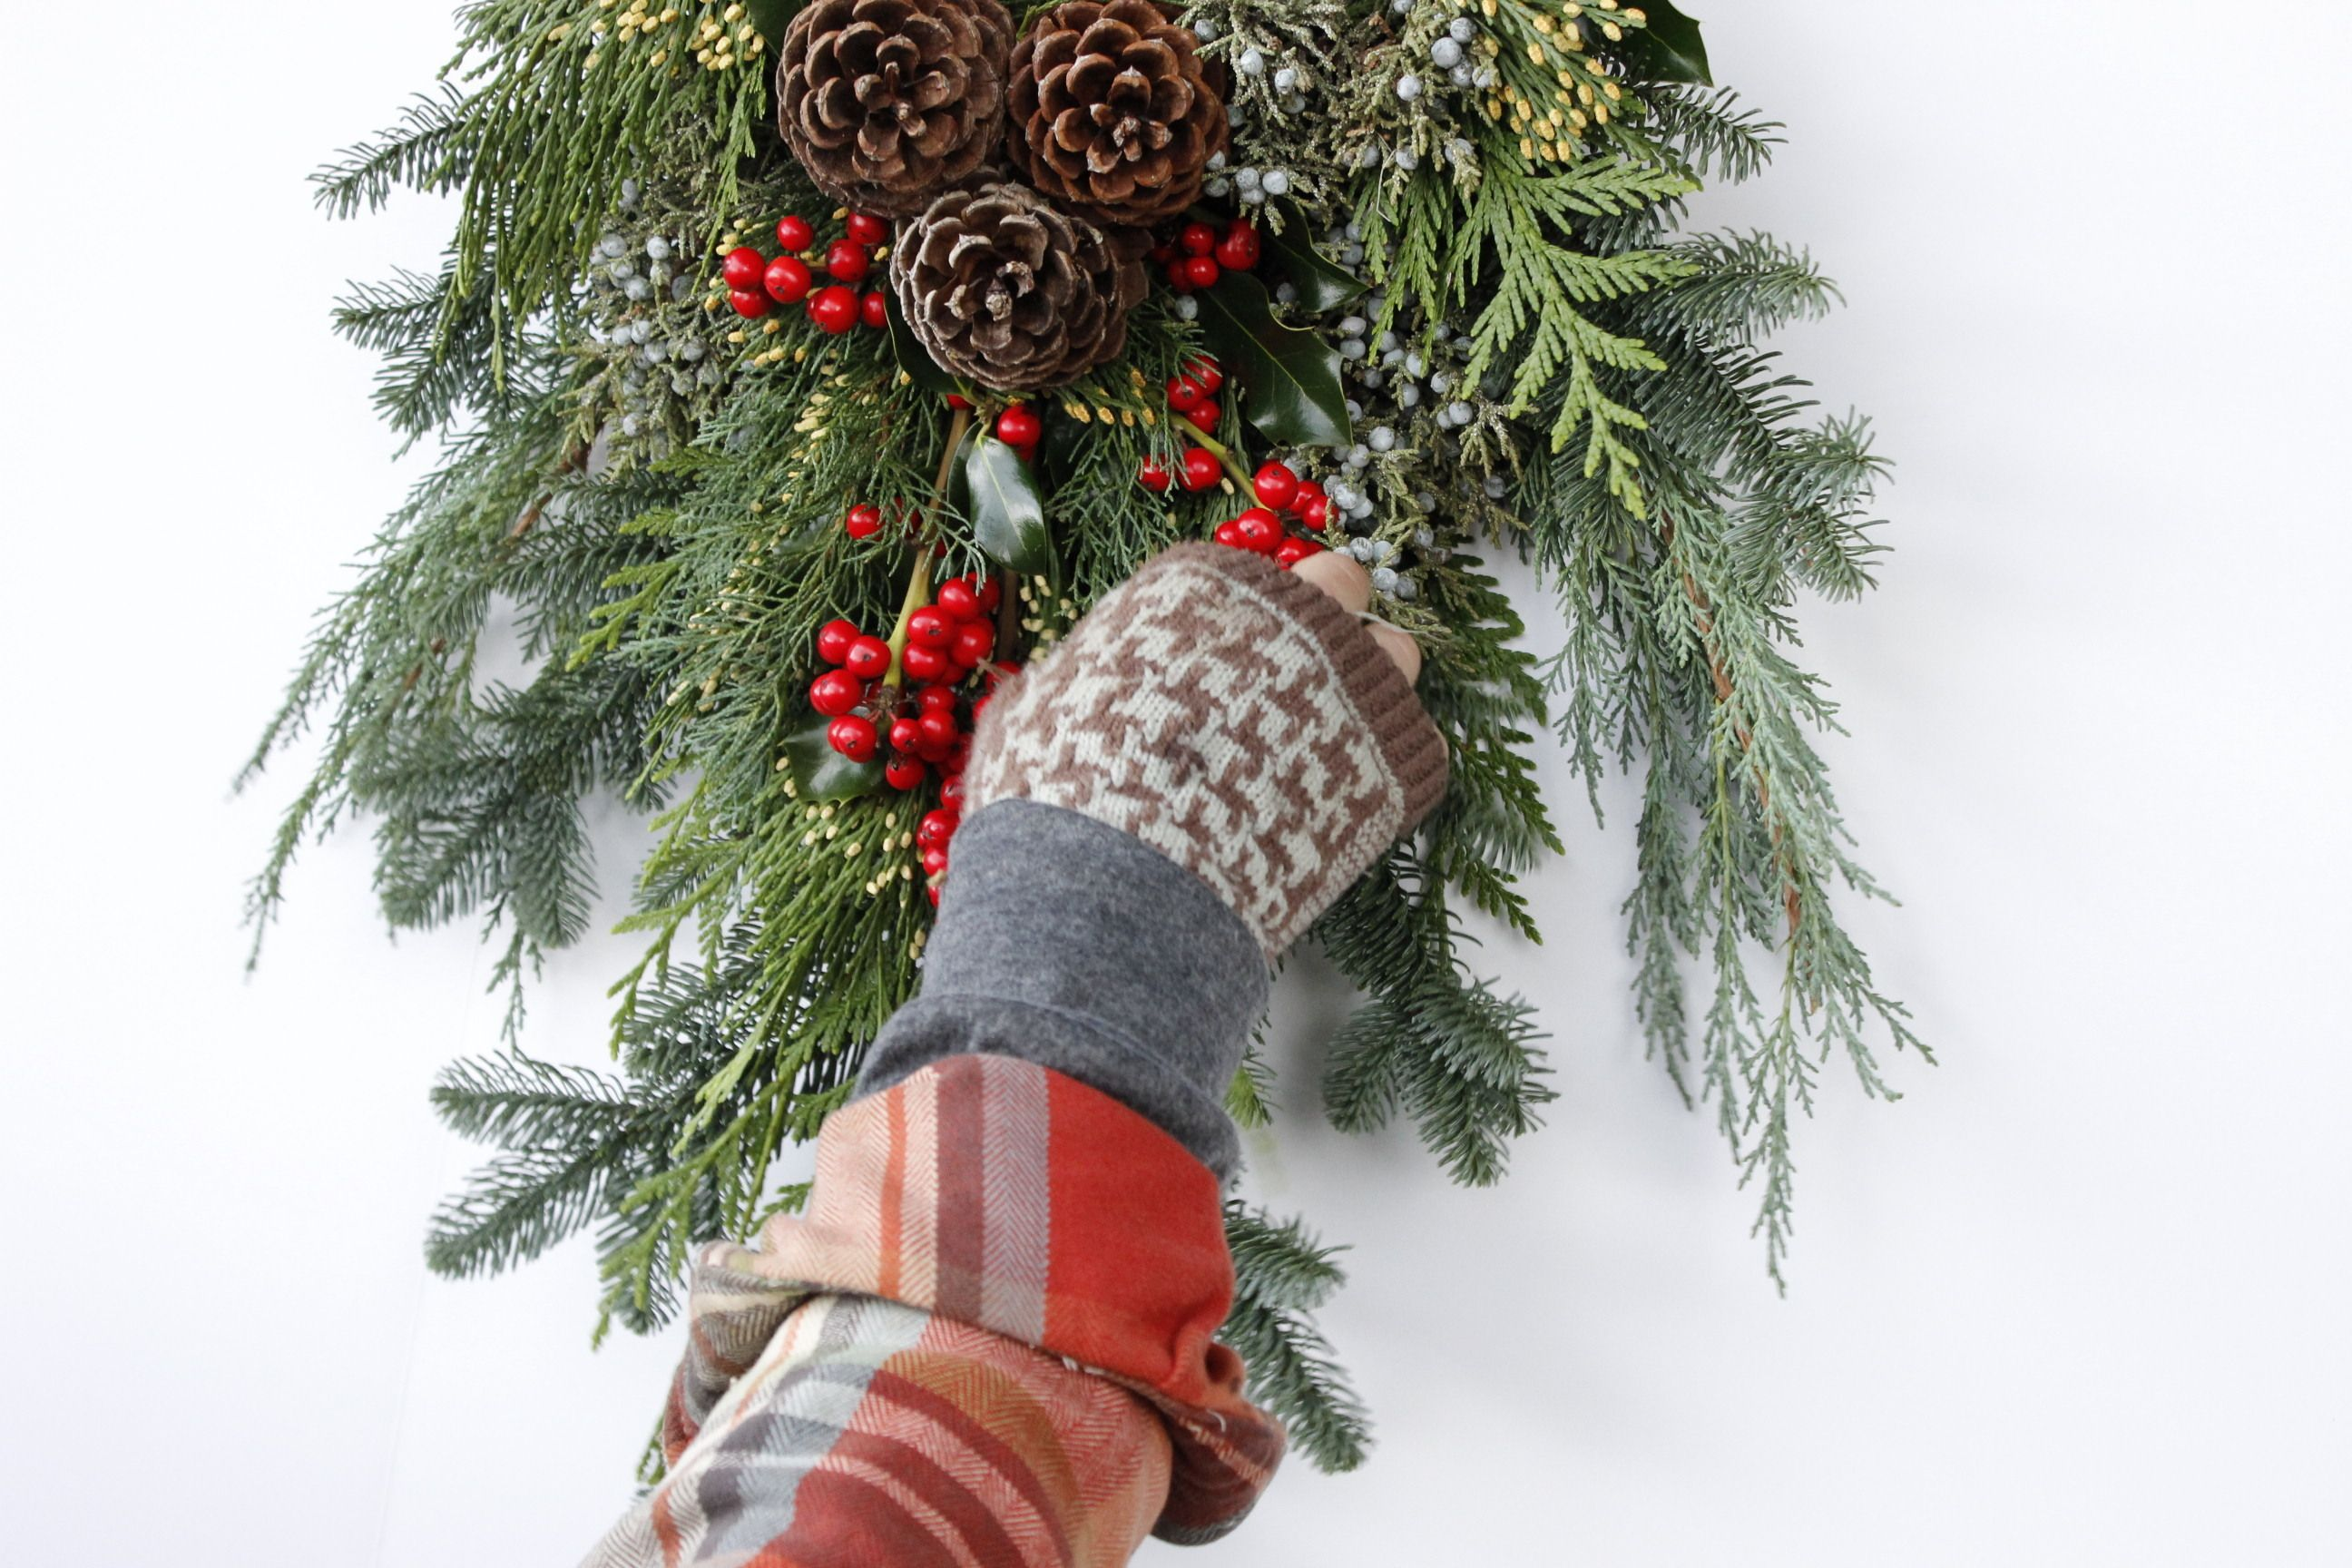 DIY Swag kit from Oregon Mountain Wreaths We provide